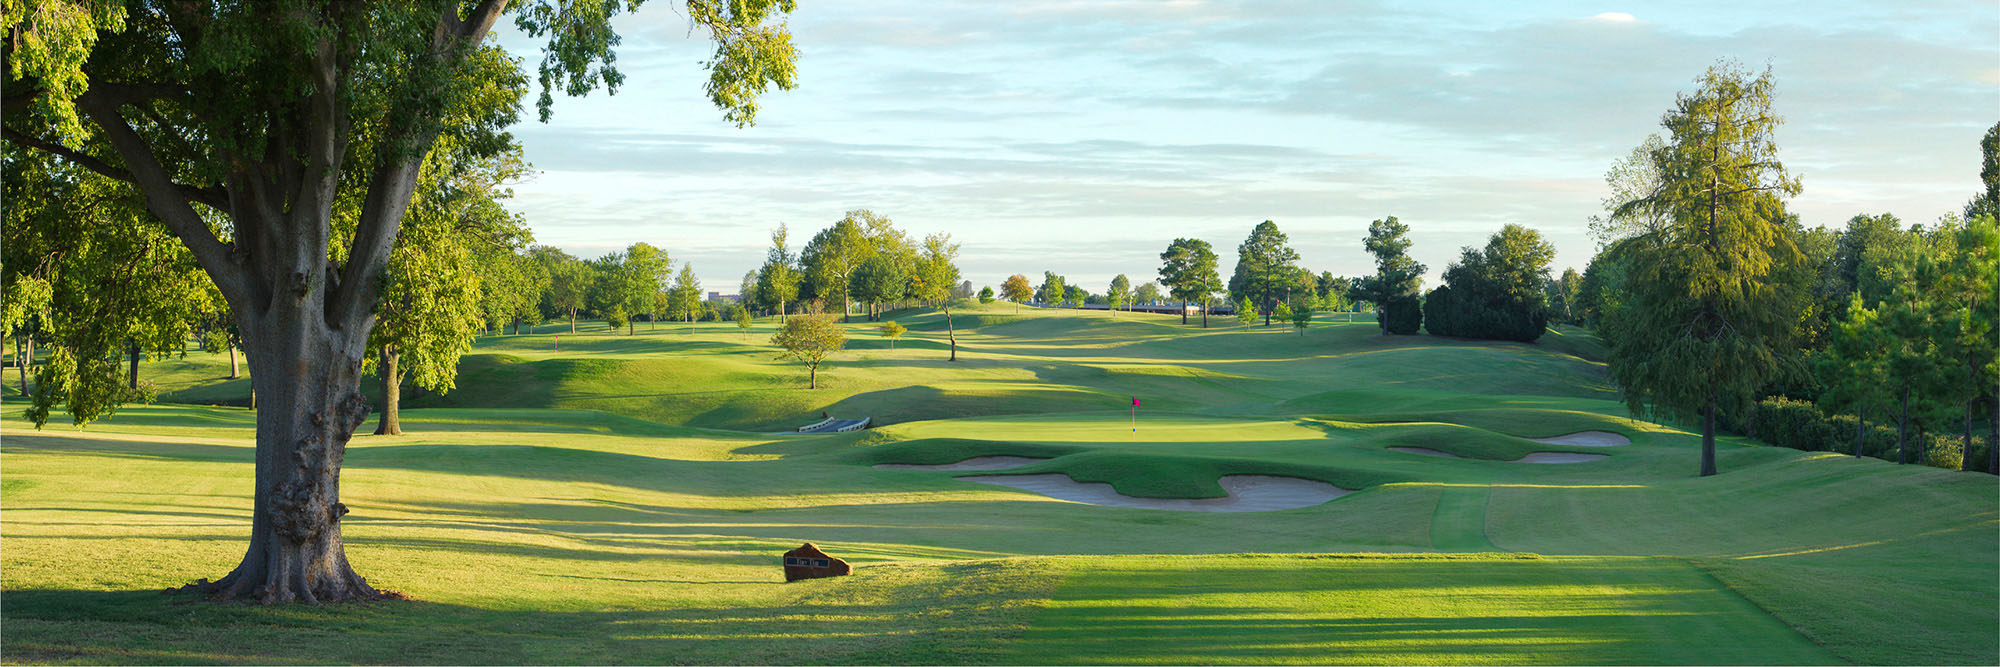 Golf Course Image - Tulsa Country Club No. 17